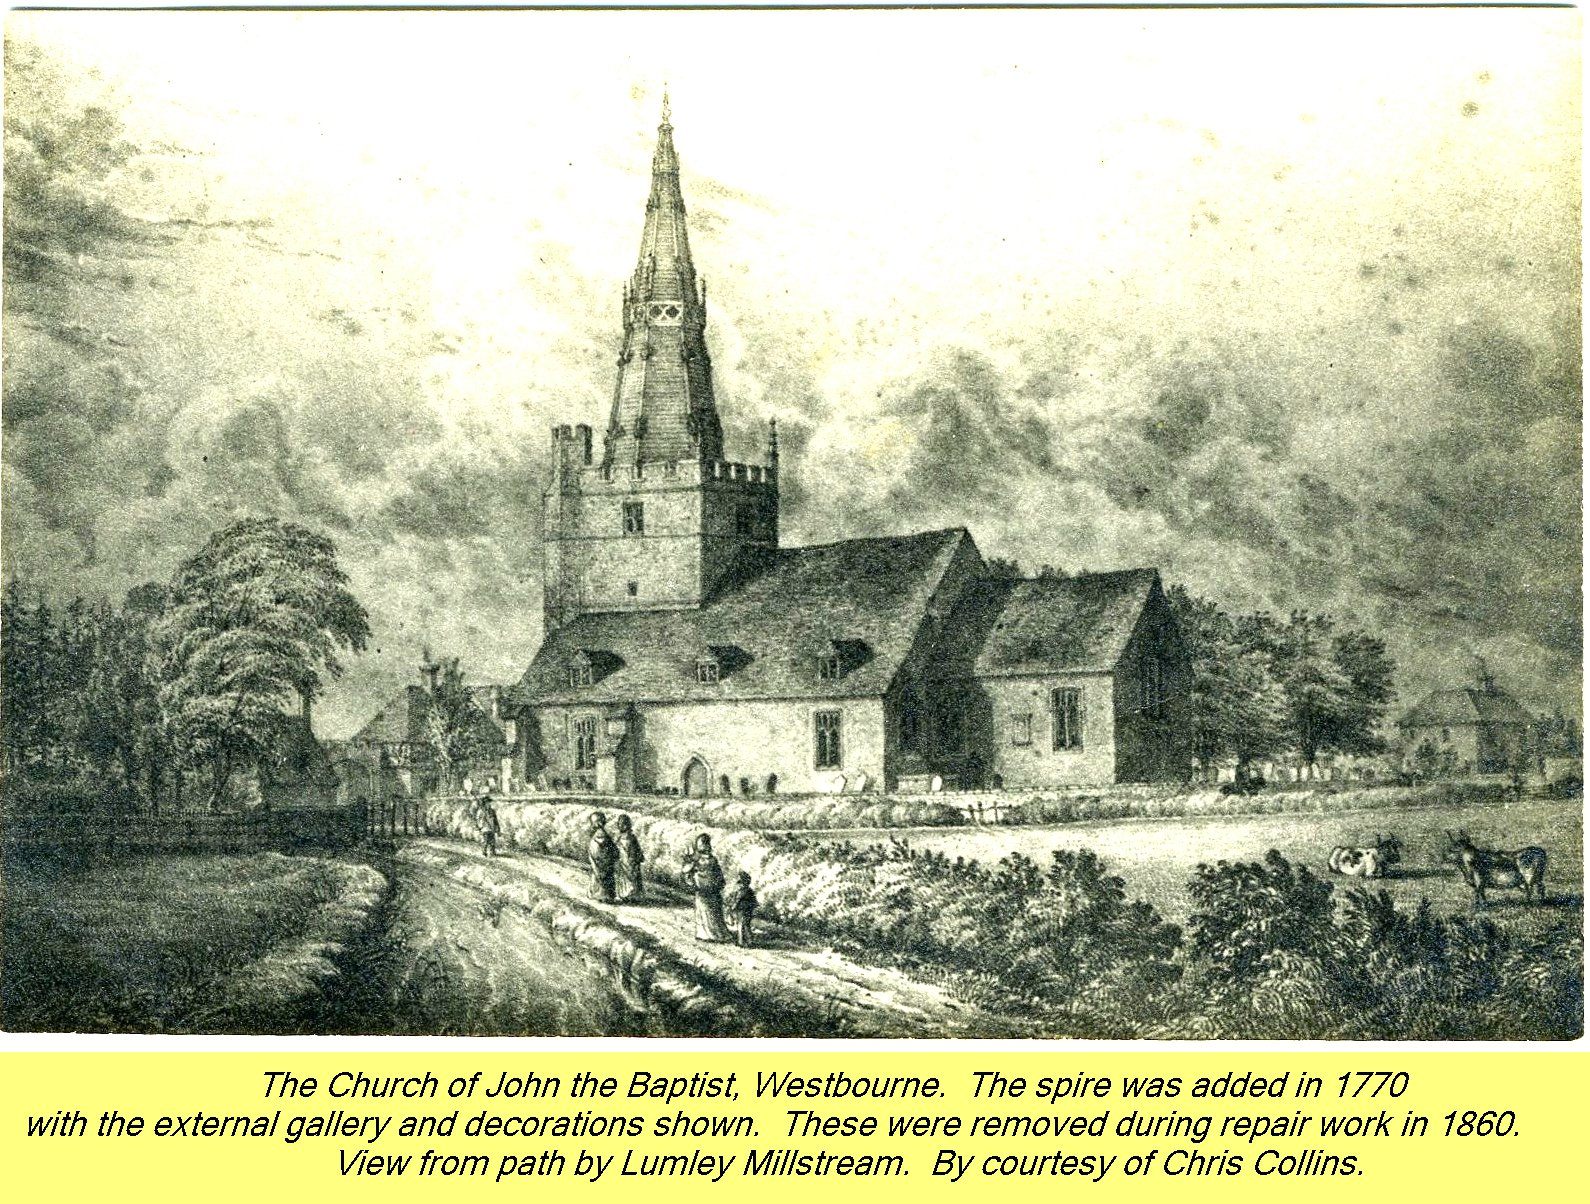 WESTBOURNE HISTORY PHOTO, CHURCH, St. JOHN, YEW, SPIRE, 1770, LUMLEY MILLSTREAM